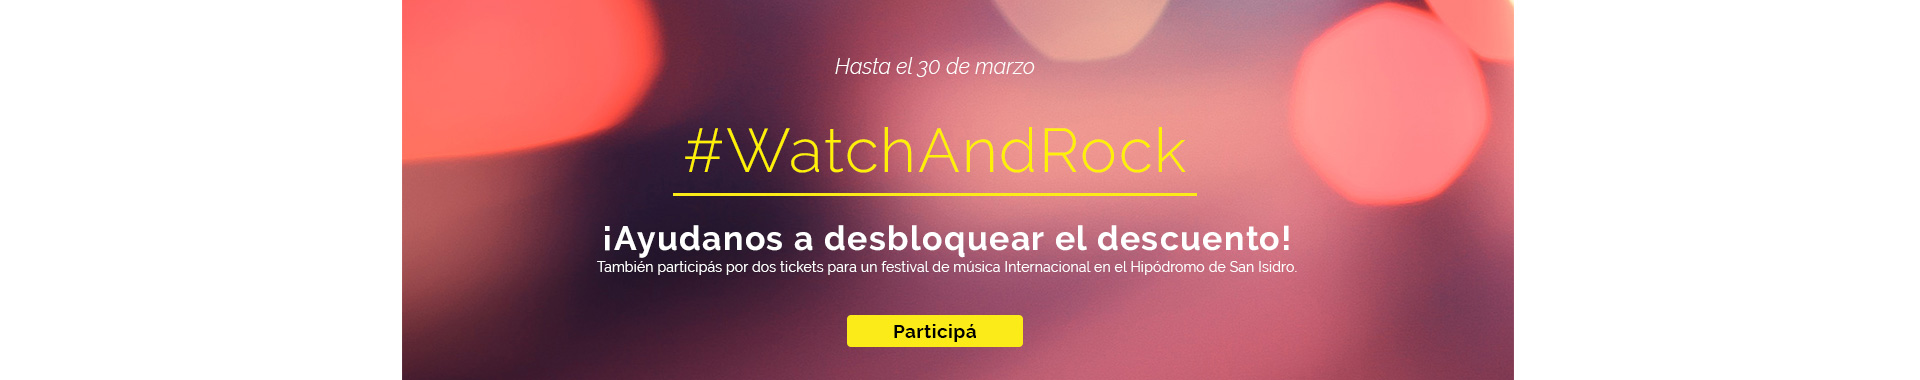 Watch And Rock